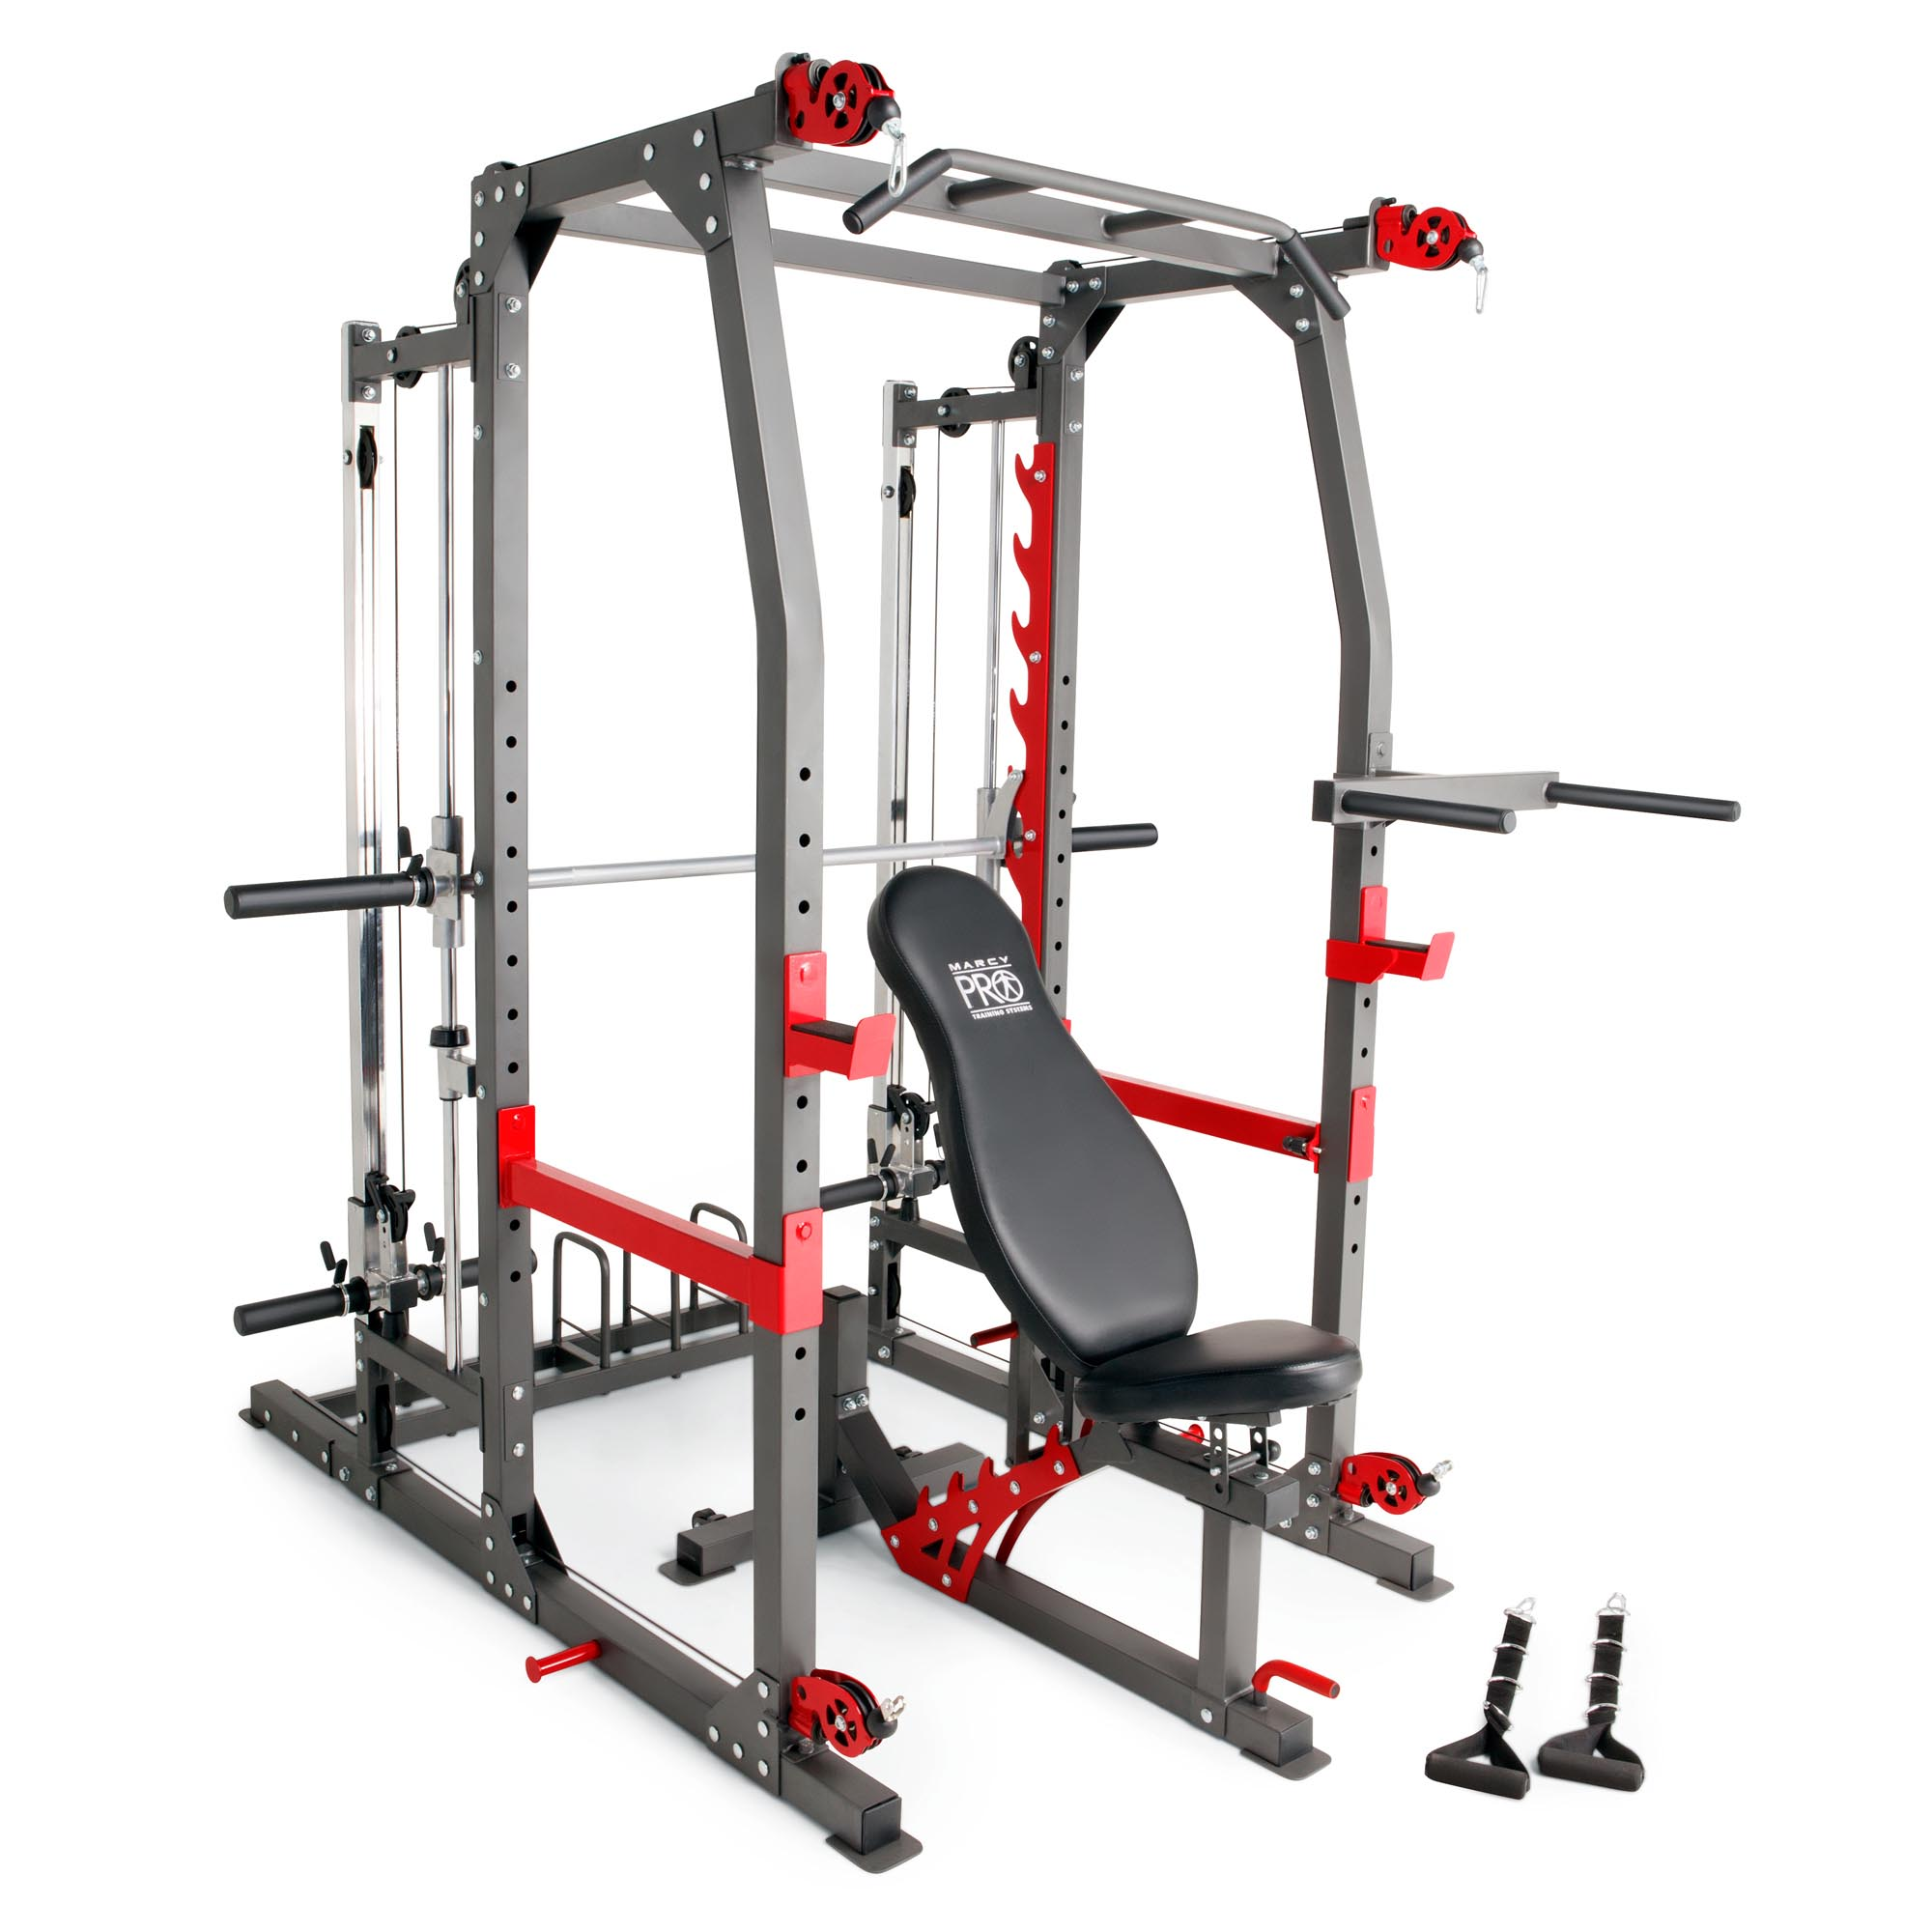 Marcy pro smith machine weight bench home gym total body workout training system walmart also rh